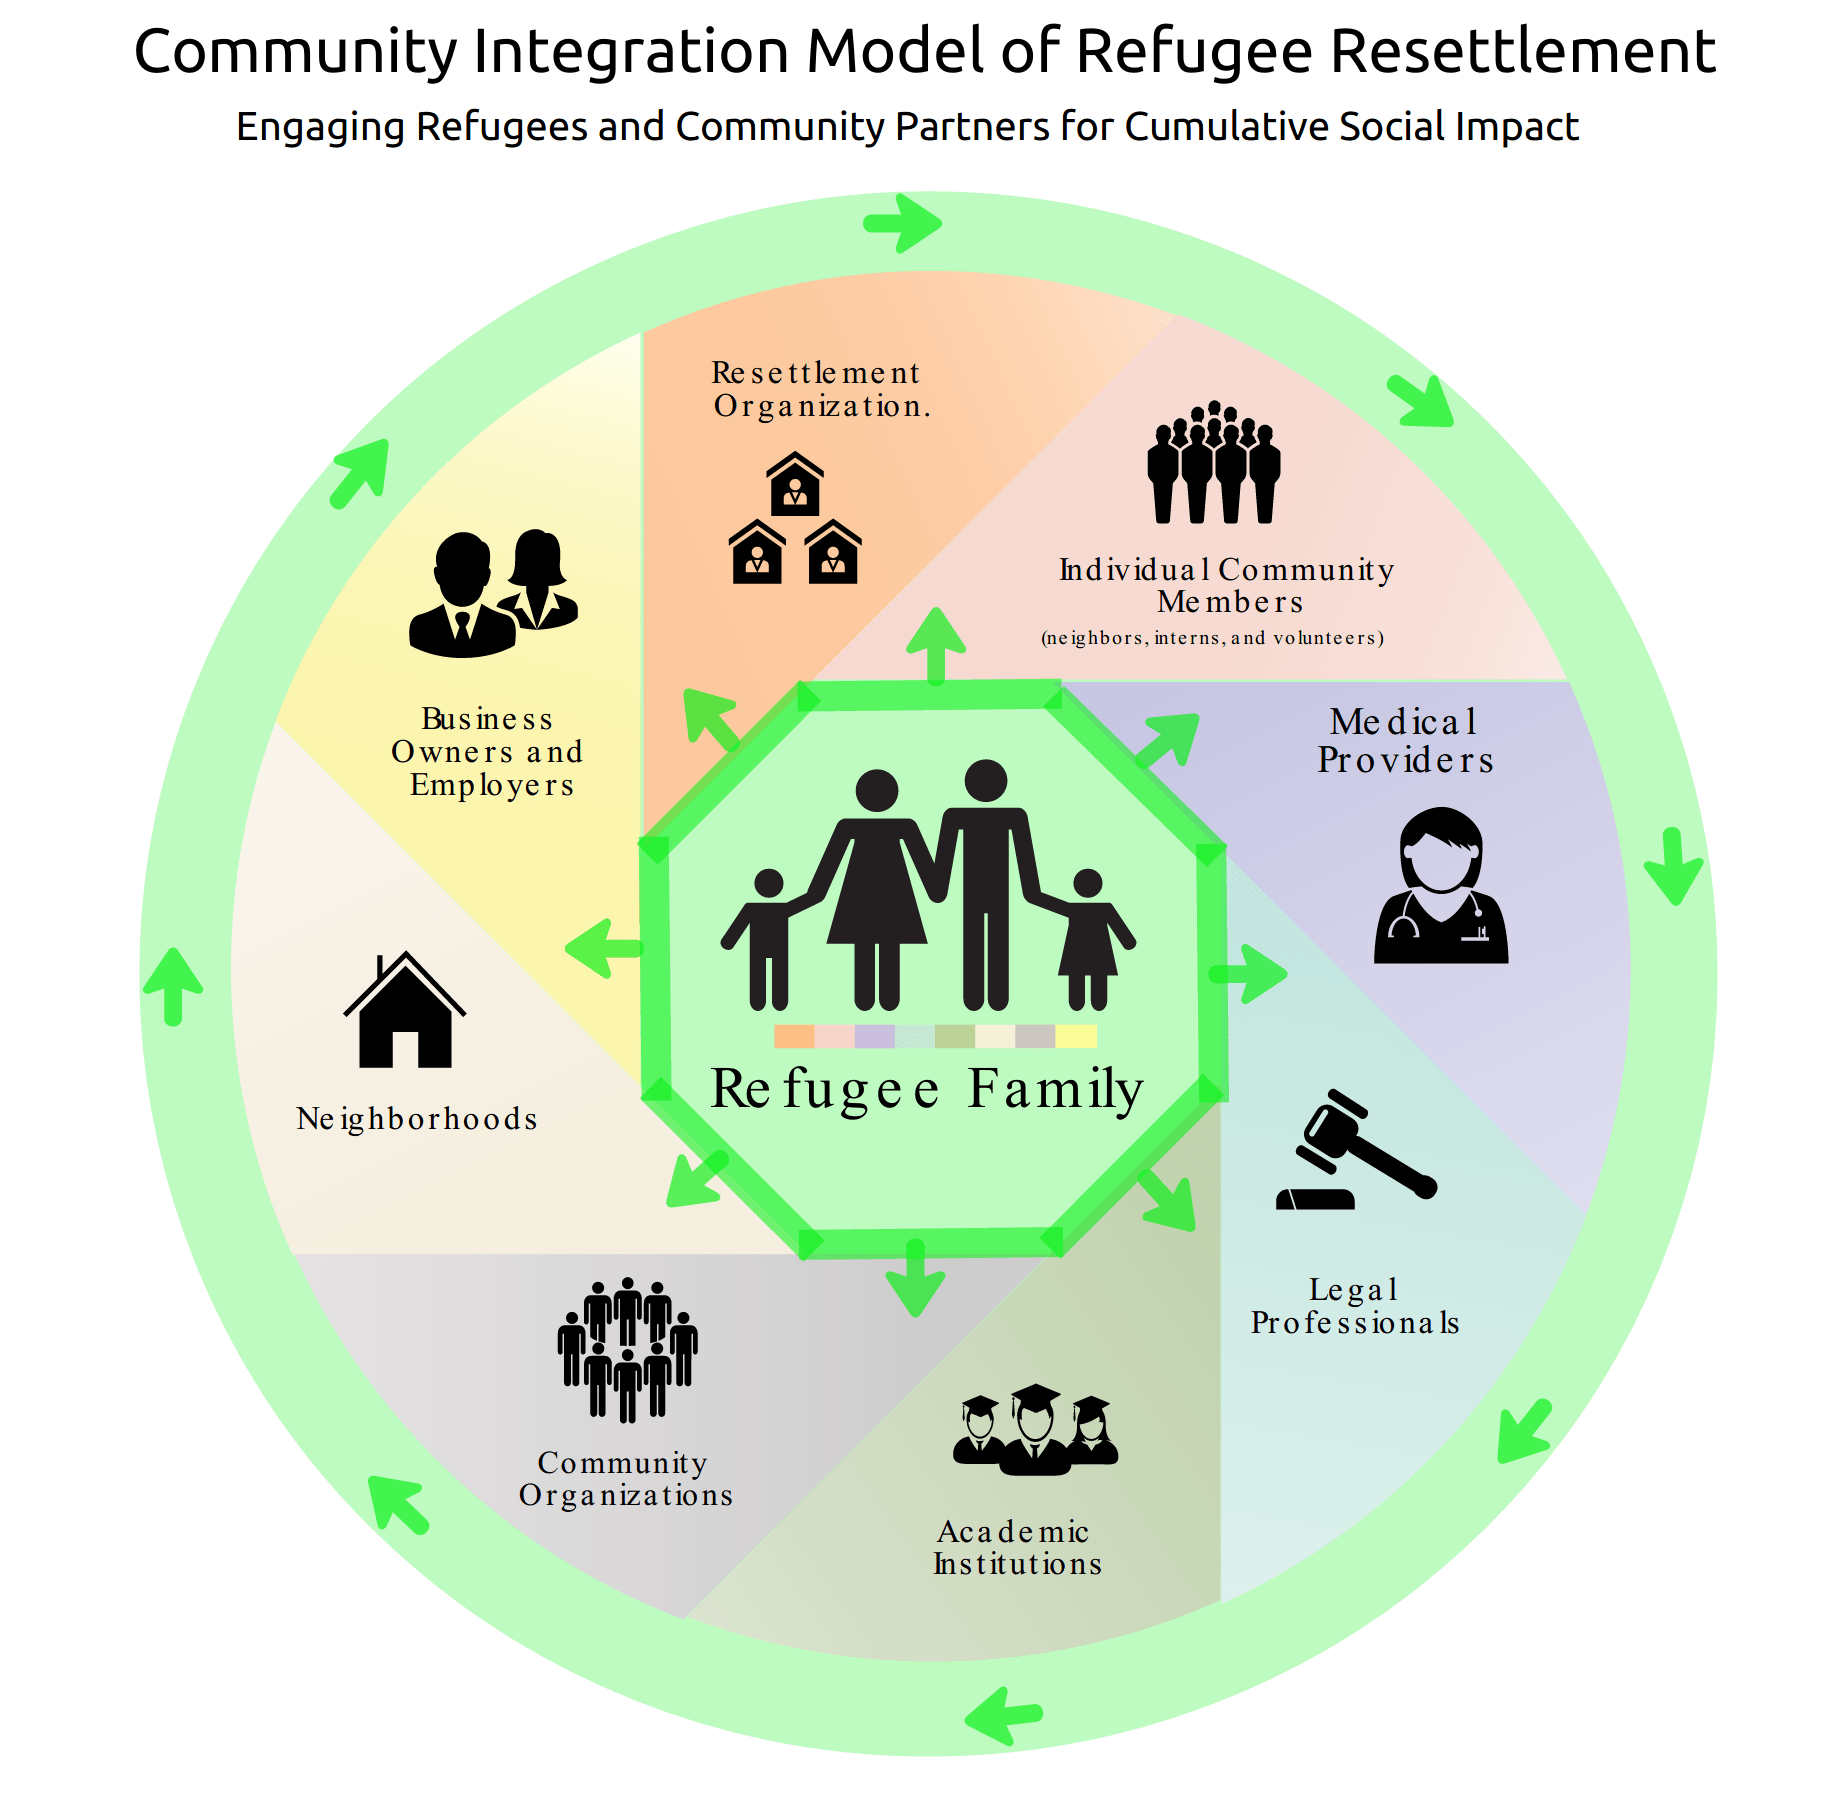 hight resolution of graphic 2 the community integration model of refugee resettlement community engagement for cumulative social impact